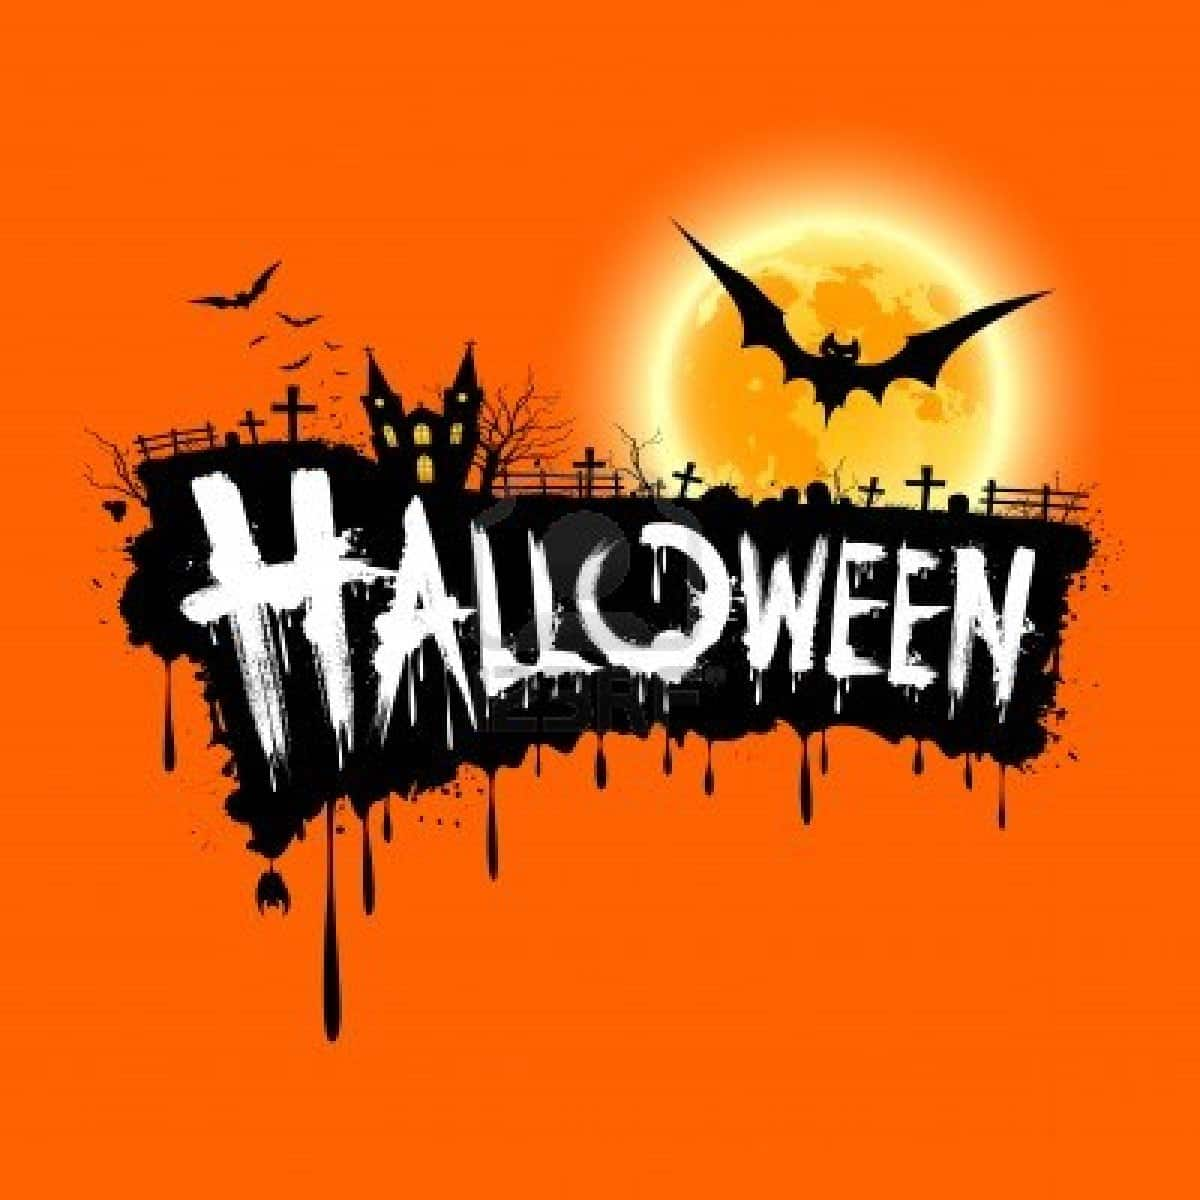 How Many Weeks To Halloween 2020 How many weeks until Halloween?